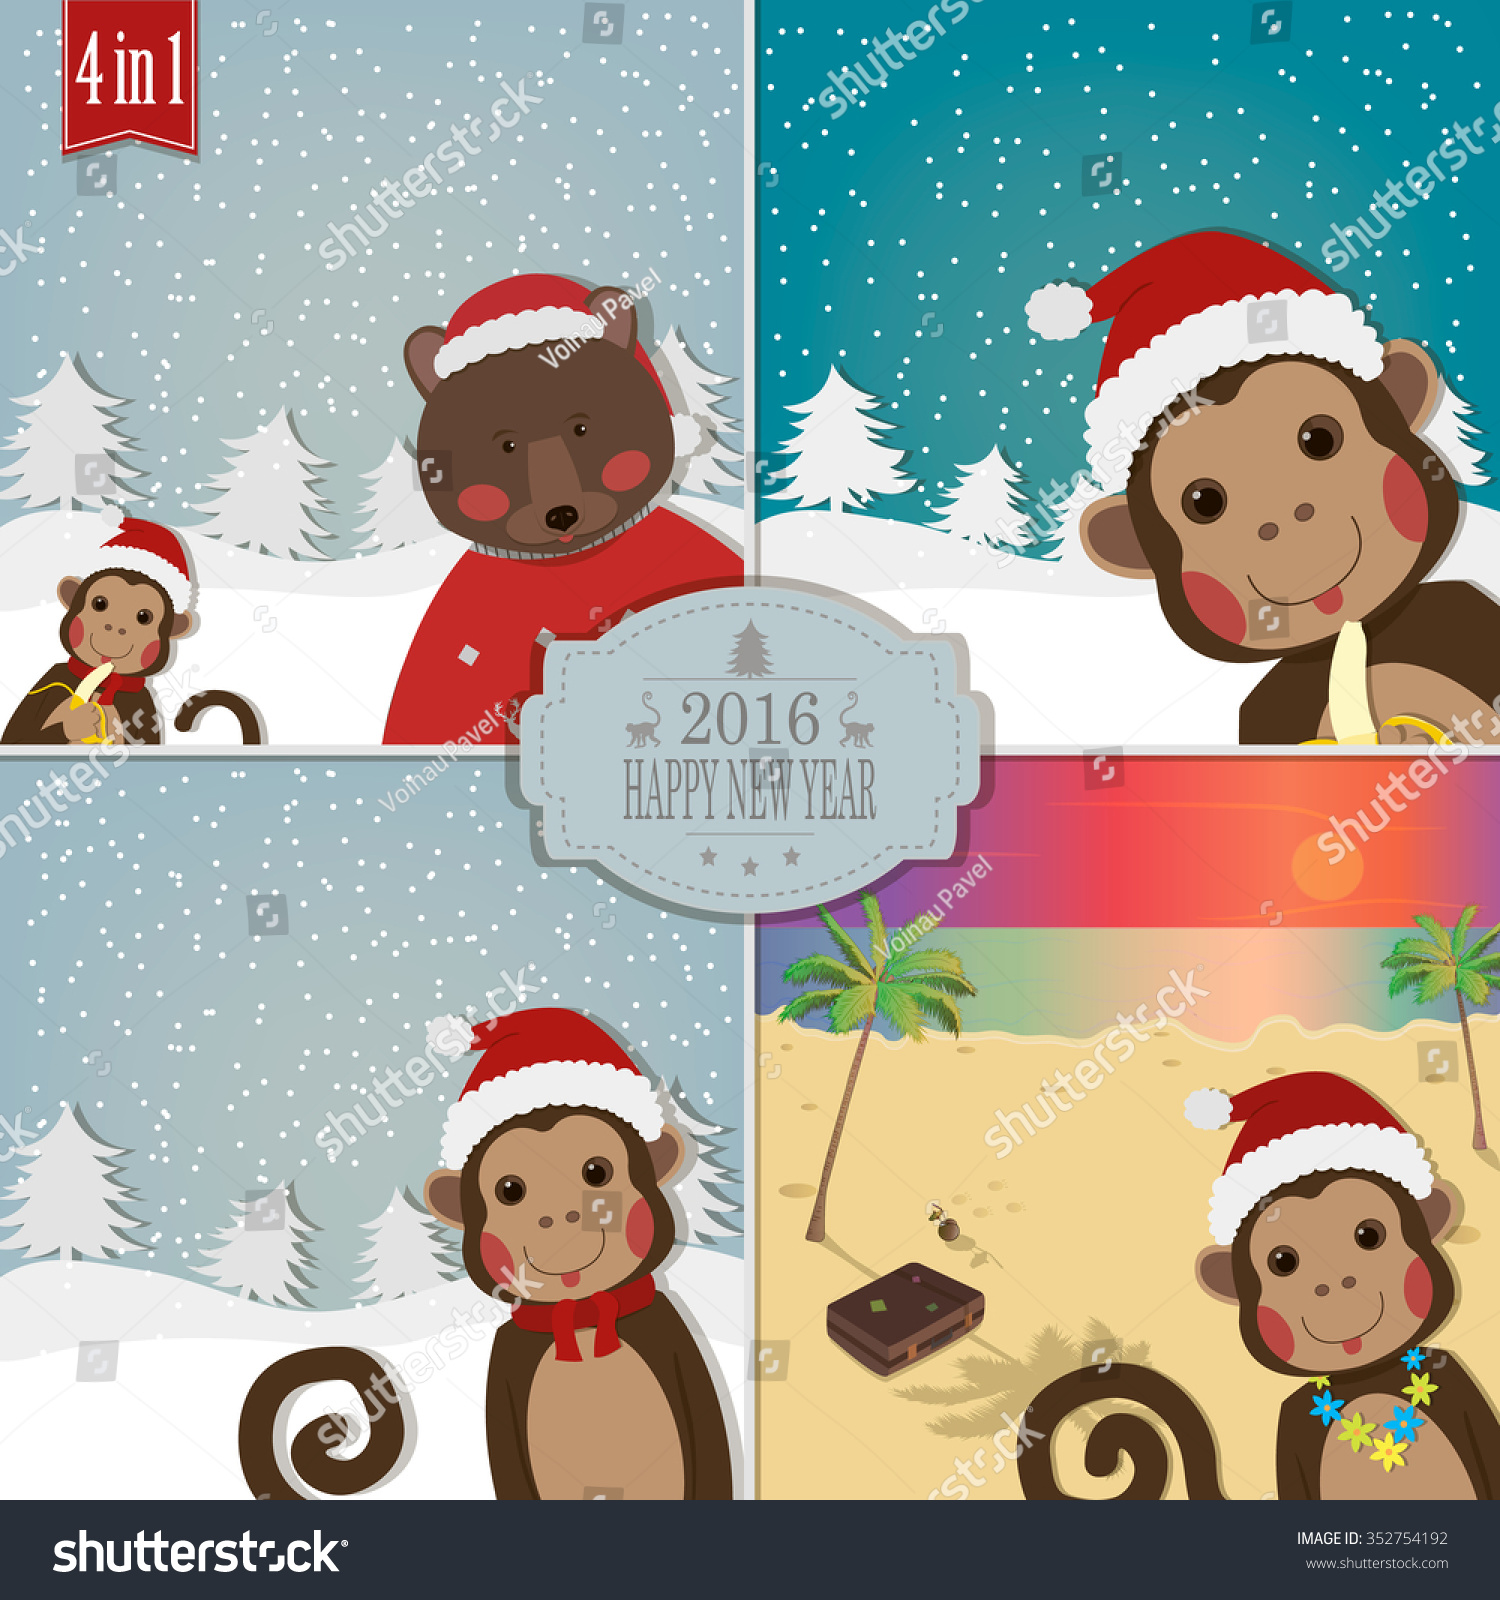 Monkey With Friends Bear And Santa Greeting For New Year And